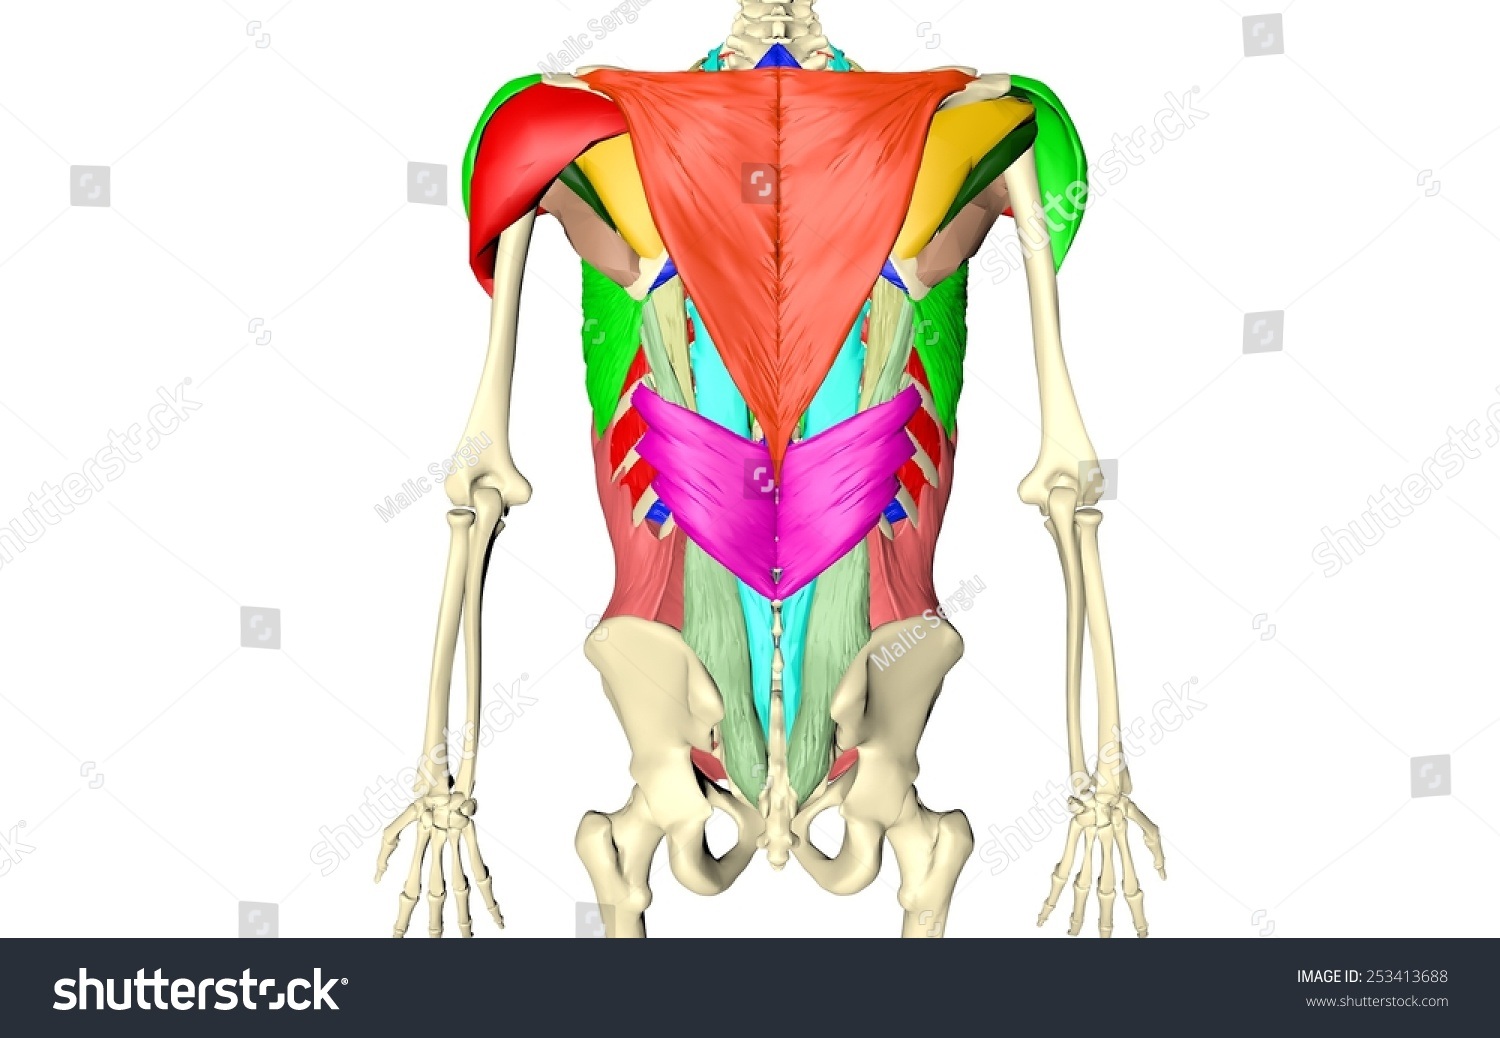 Body Muscles Body Skeleton Spinal Muscles Belly Muscles Abdominal Bones Ribs Spine